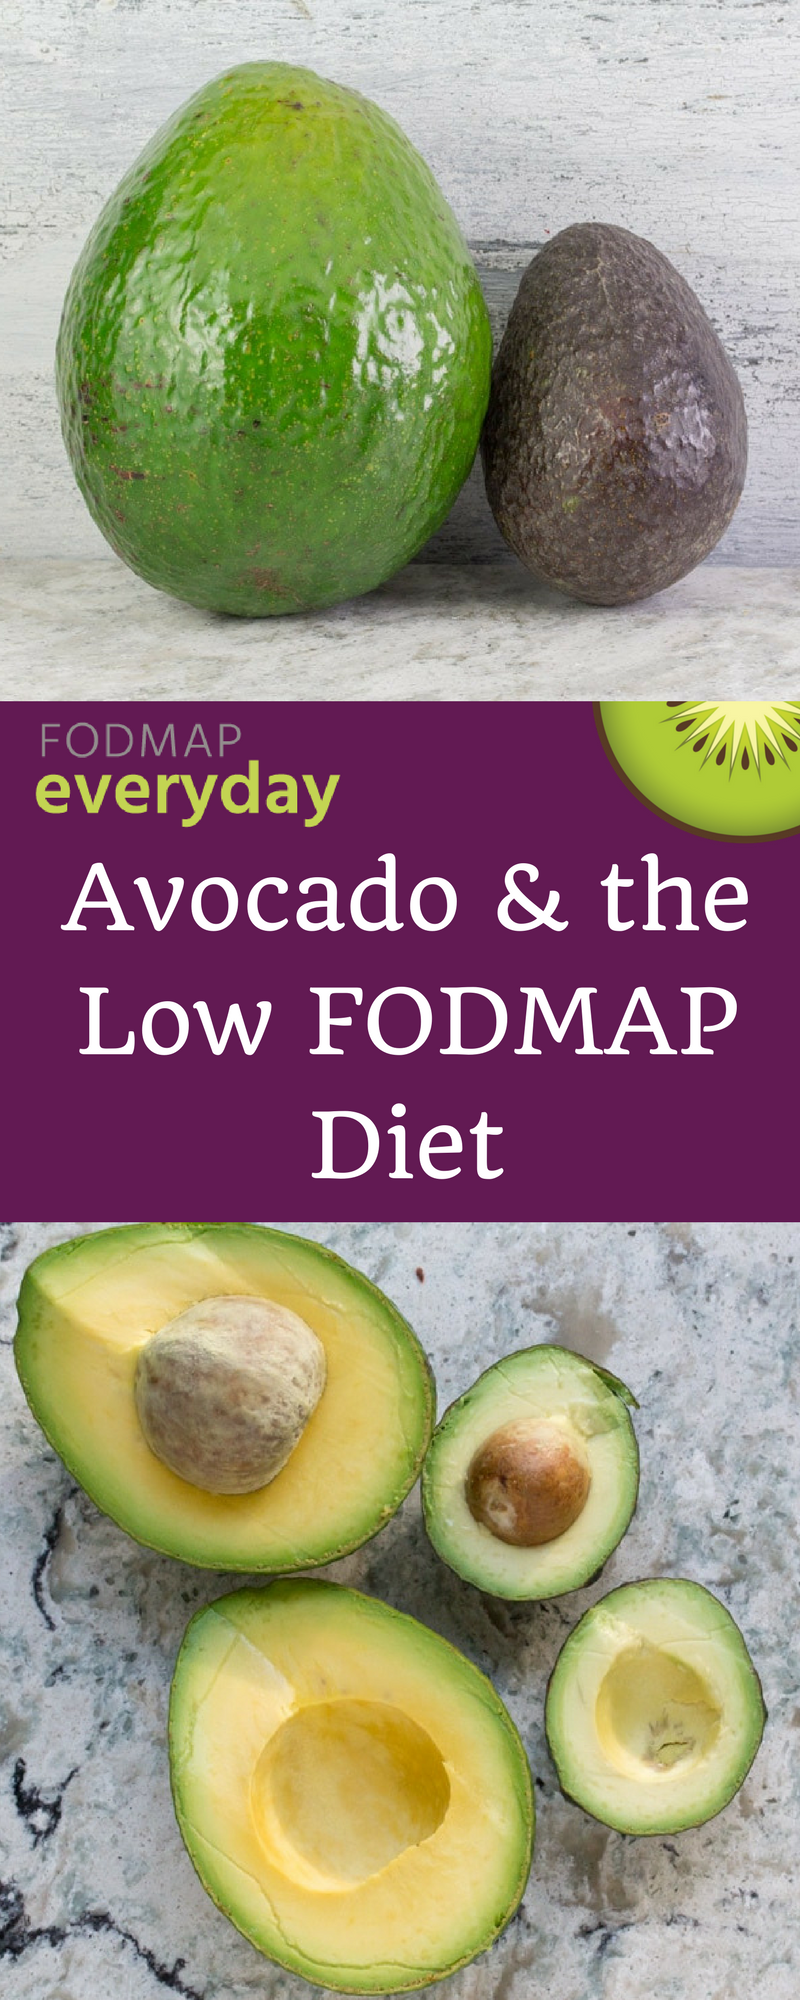 can i have avocado on fod map diet